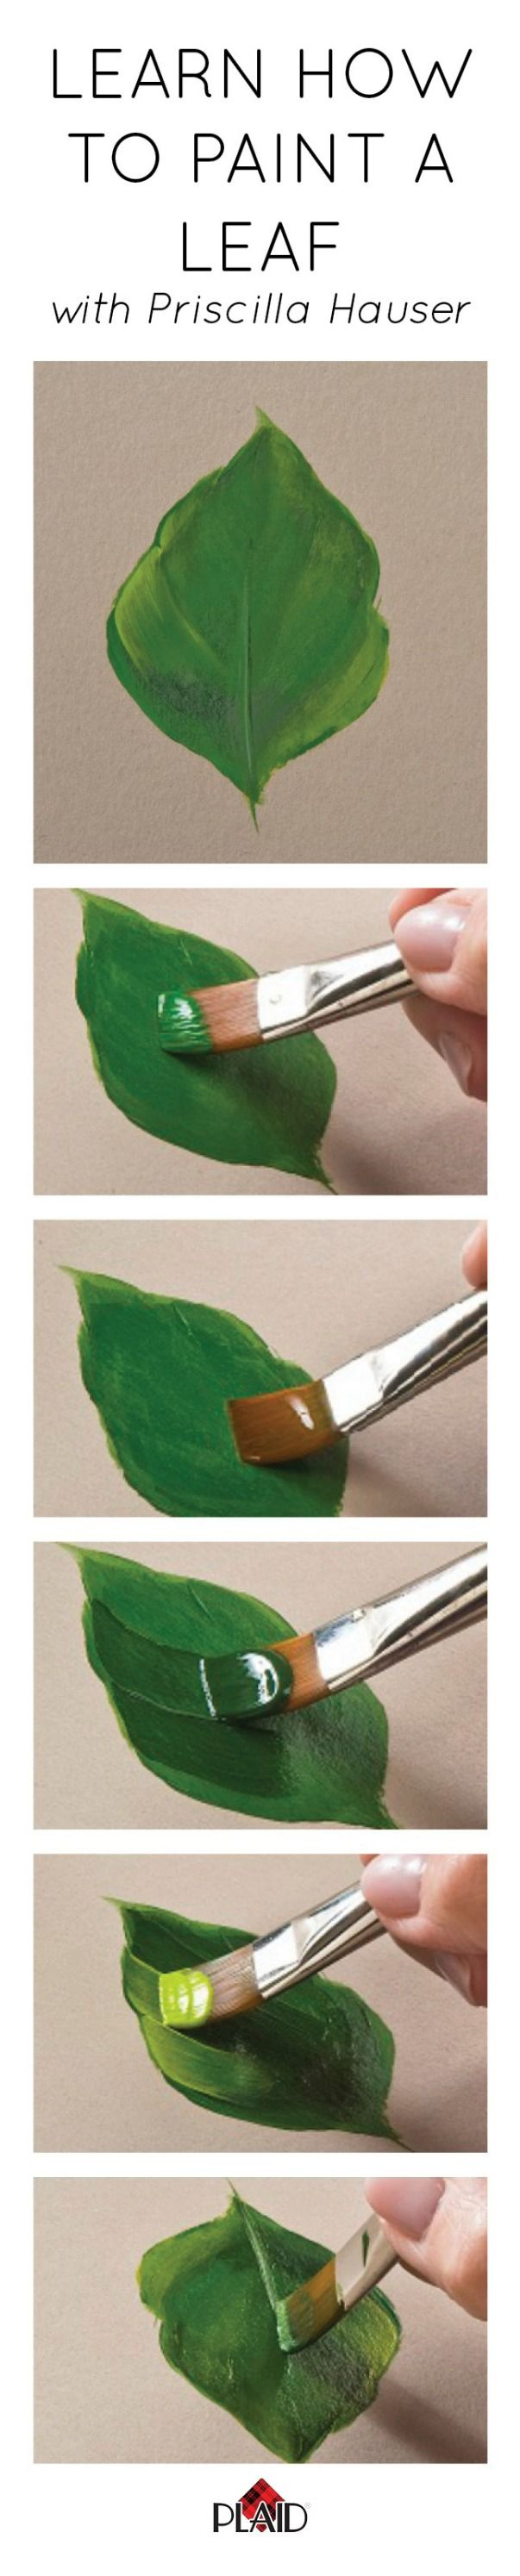 OLearn how to paint a leaf with Priscilla Hauser! Super easy step by steps #plaidcrafts #DIY